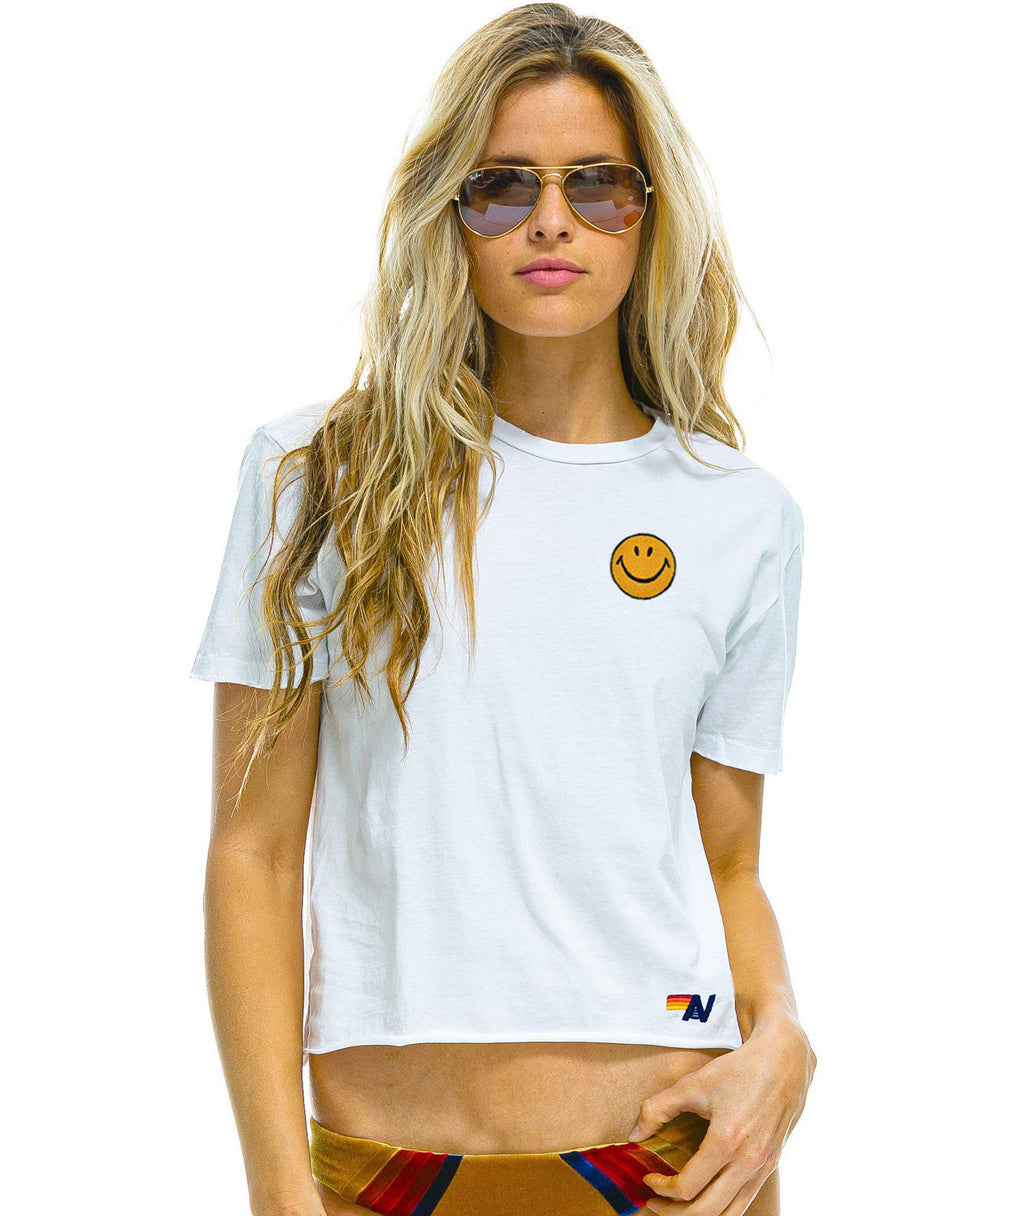 Aviator Nation Women White Embroidered Smiley Boyfriend Tee